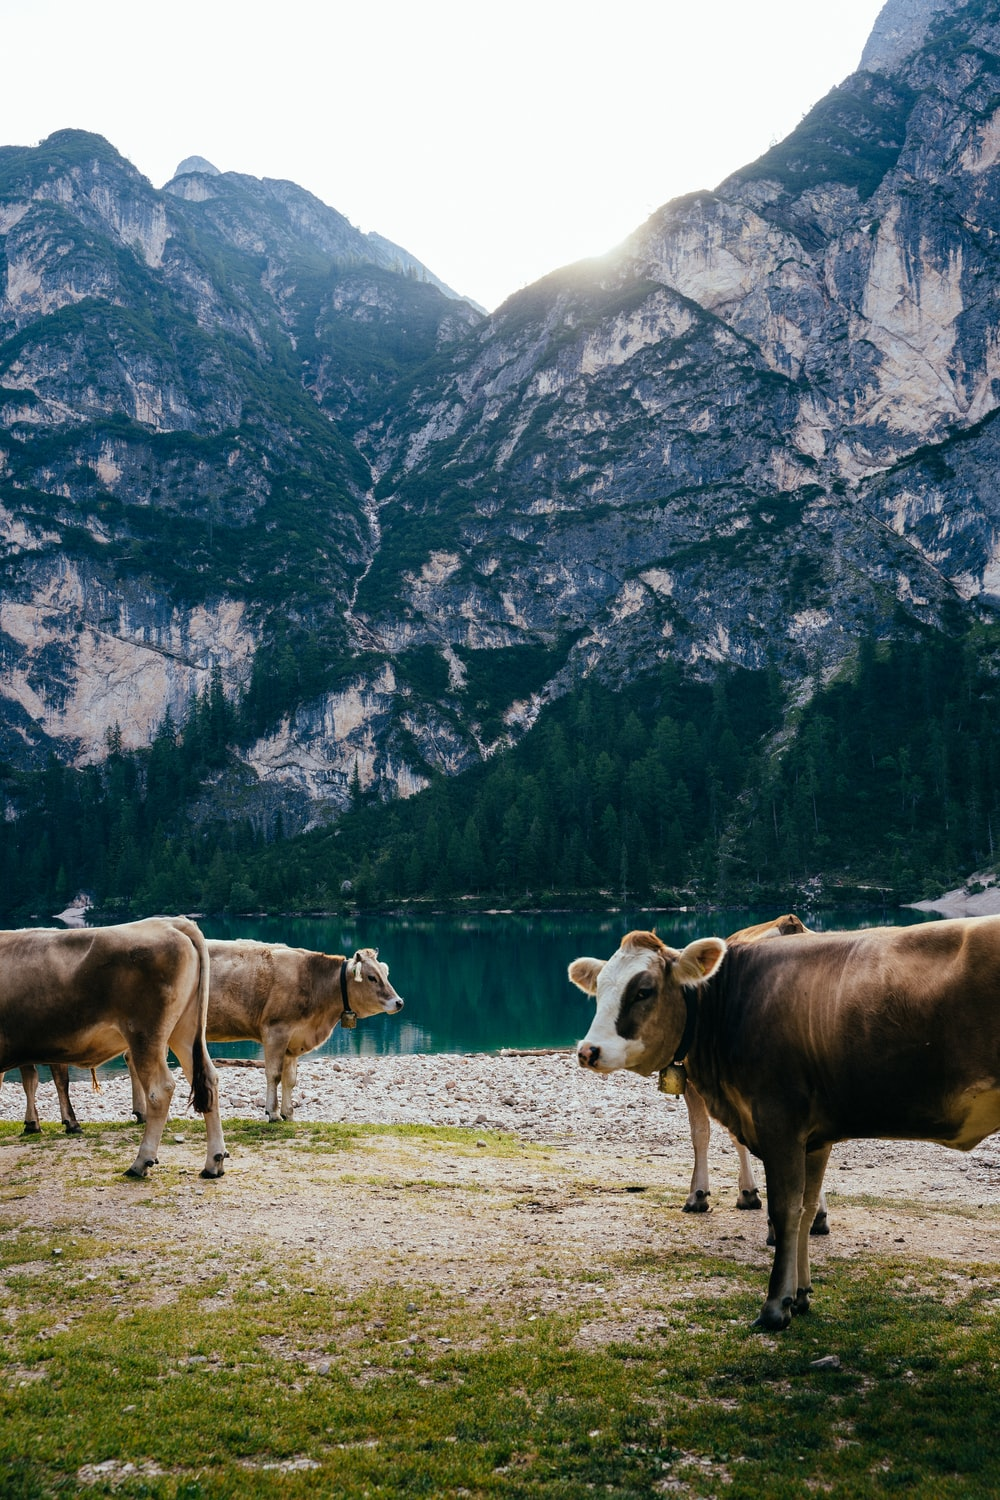 four cows standing on green grass